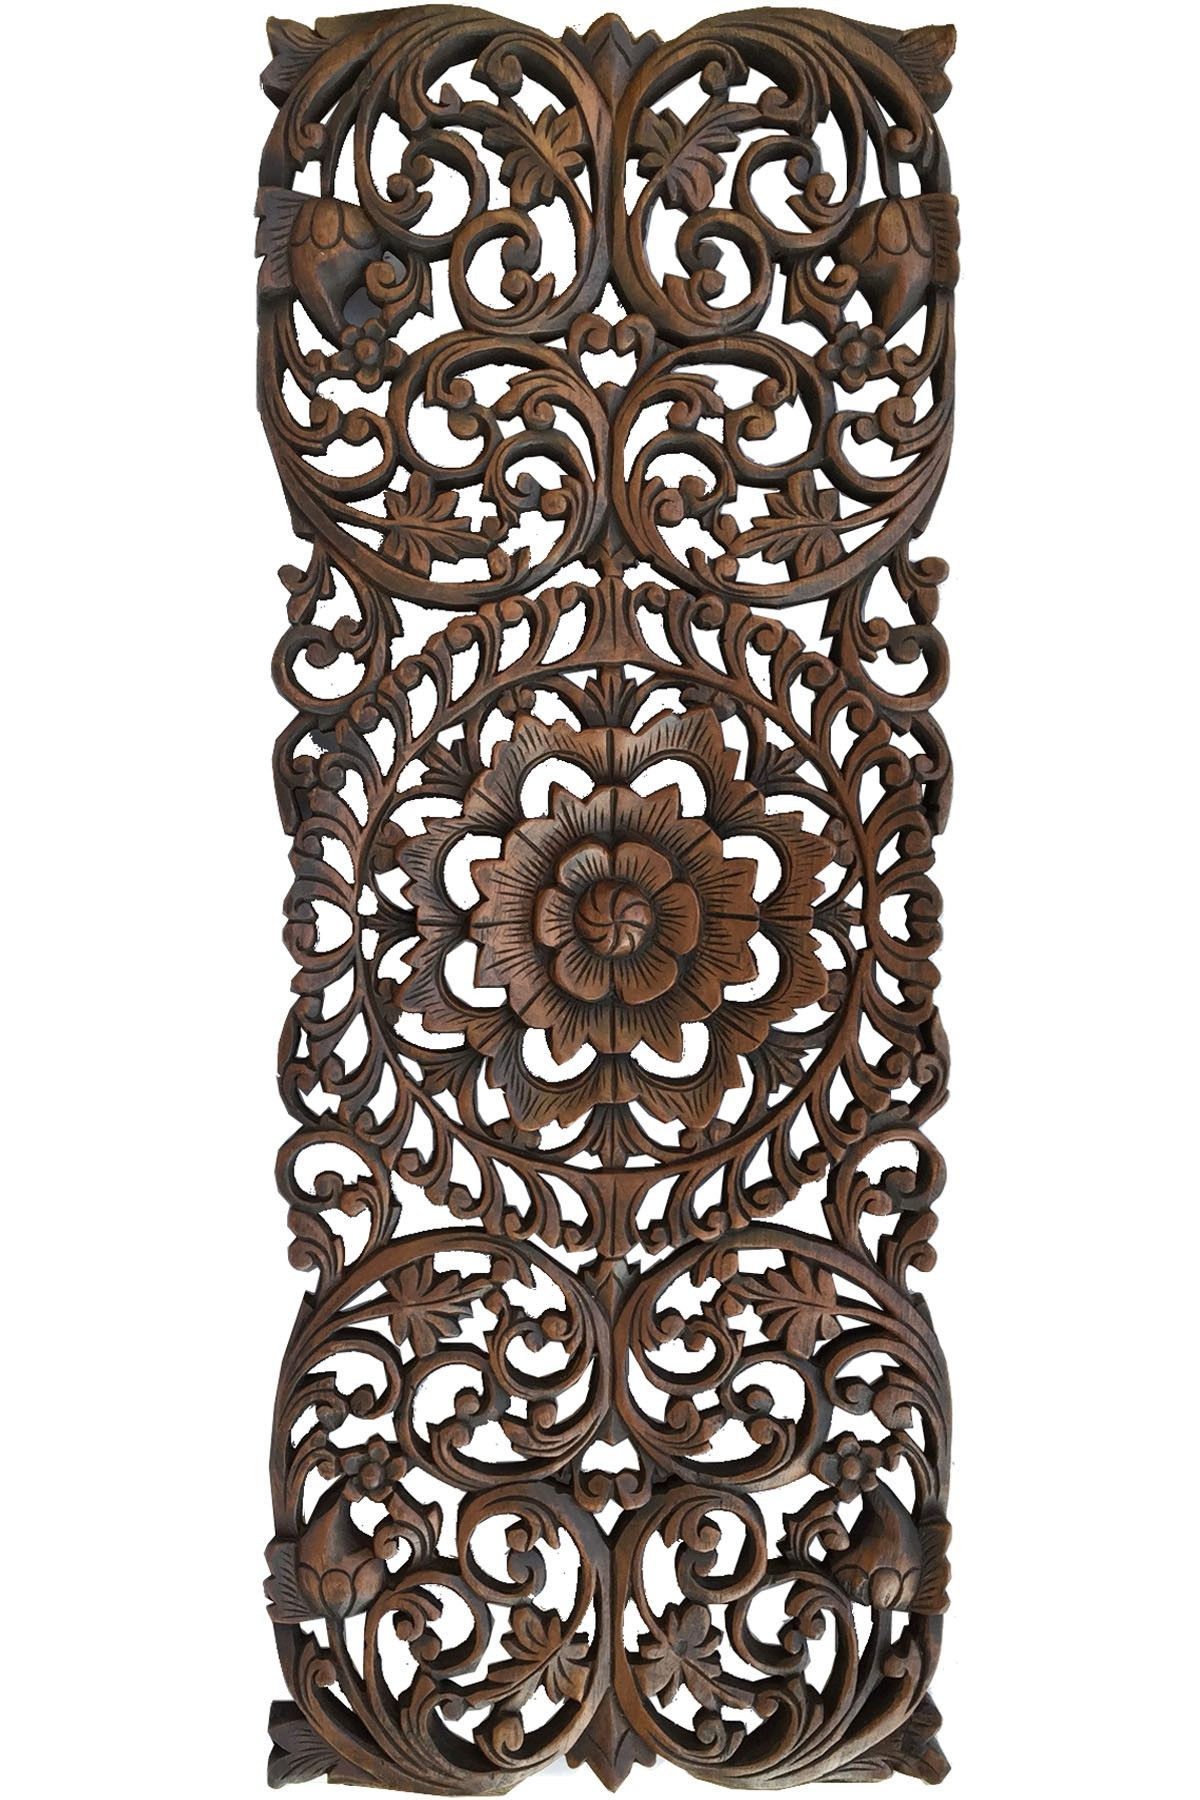 Wood Panel Wall Art Floral Tropical Carved Wood Wall Panel Asian Wall Art